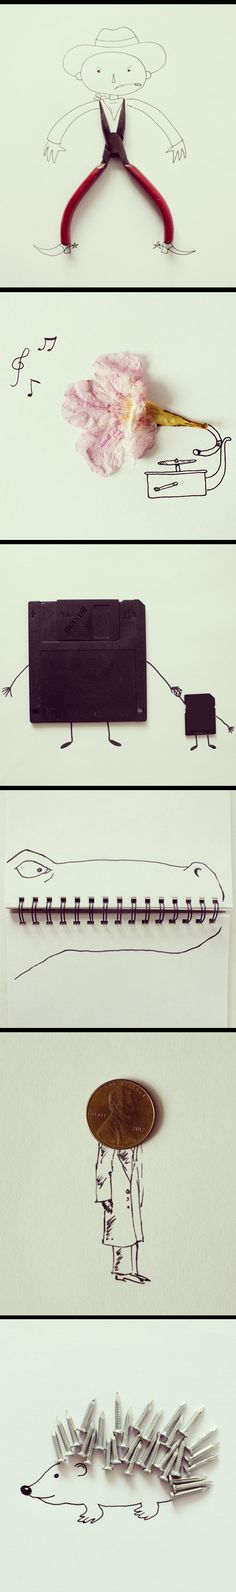 Everyday objects and pen sketches  - funny pictures #funnypictures